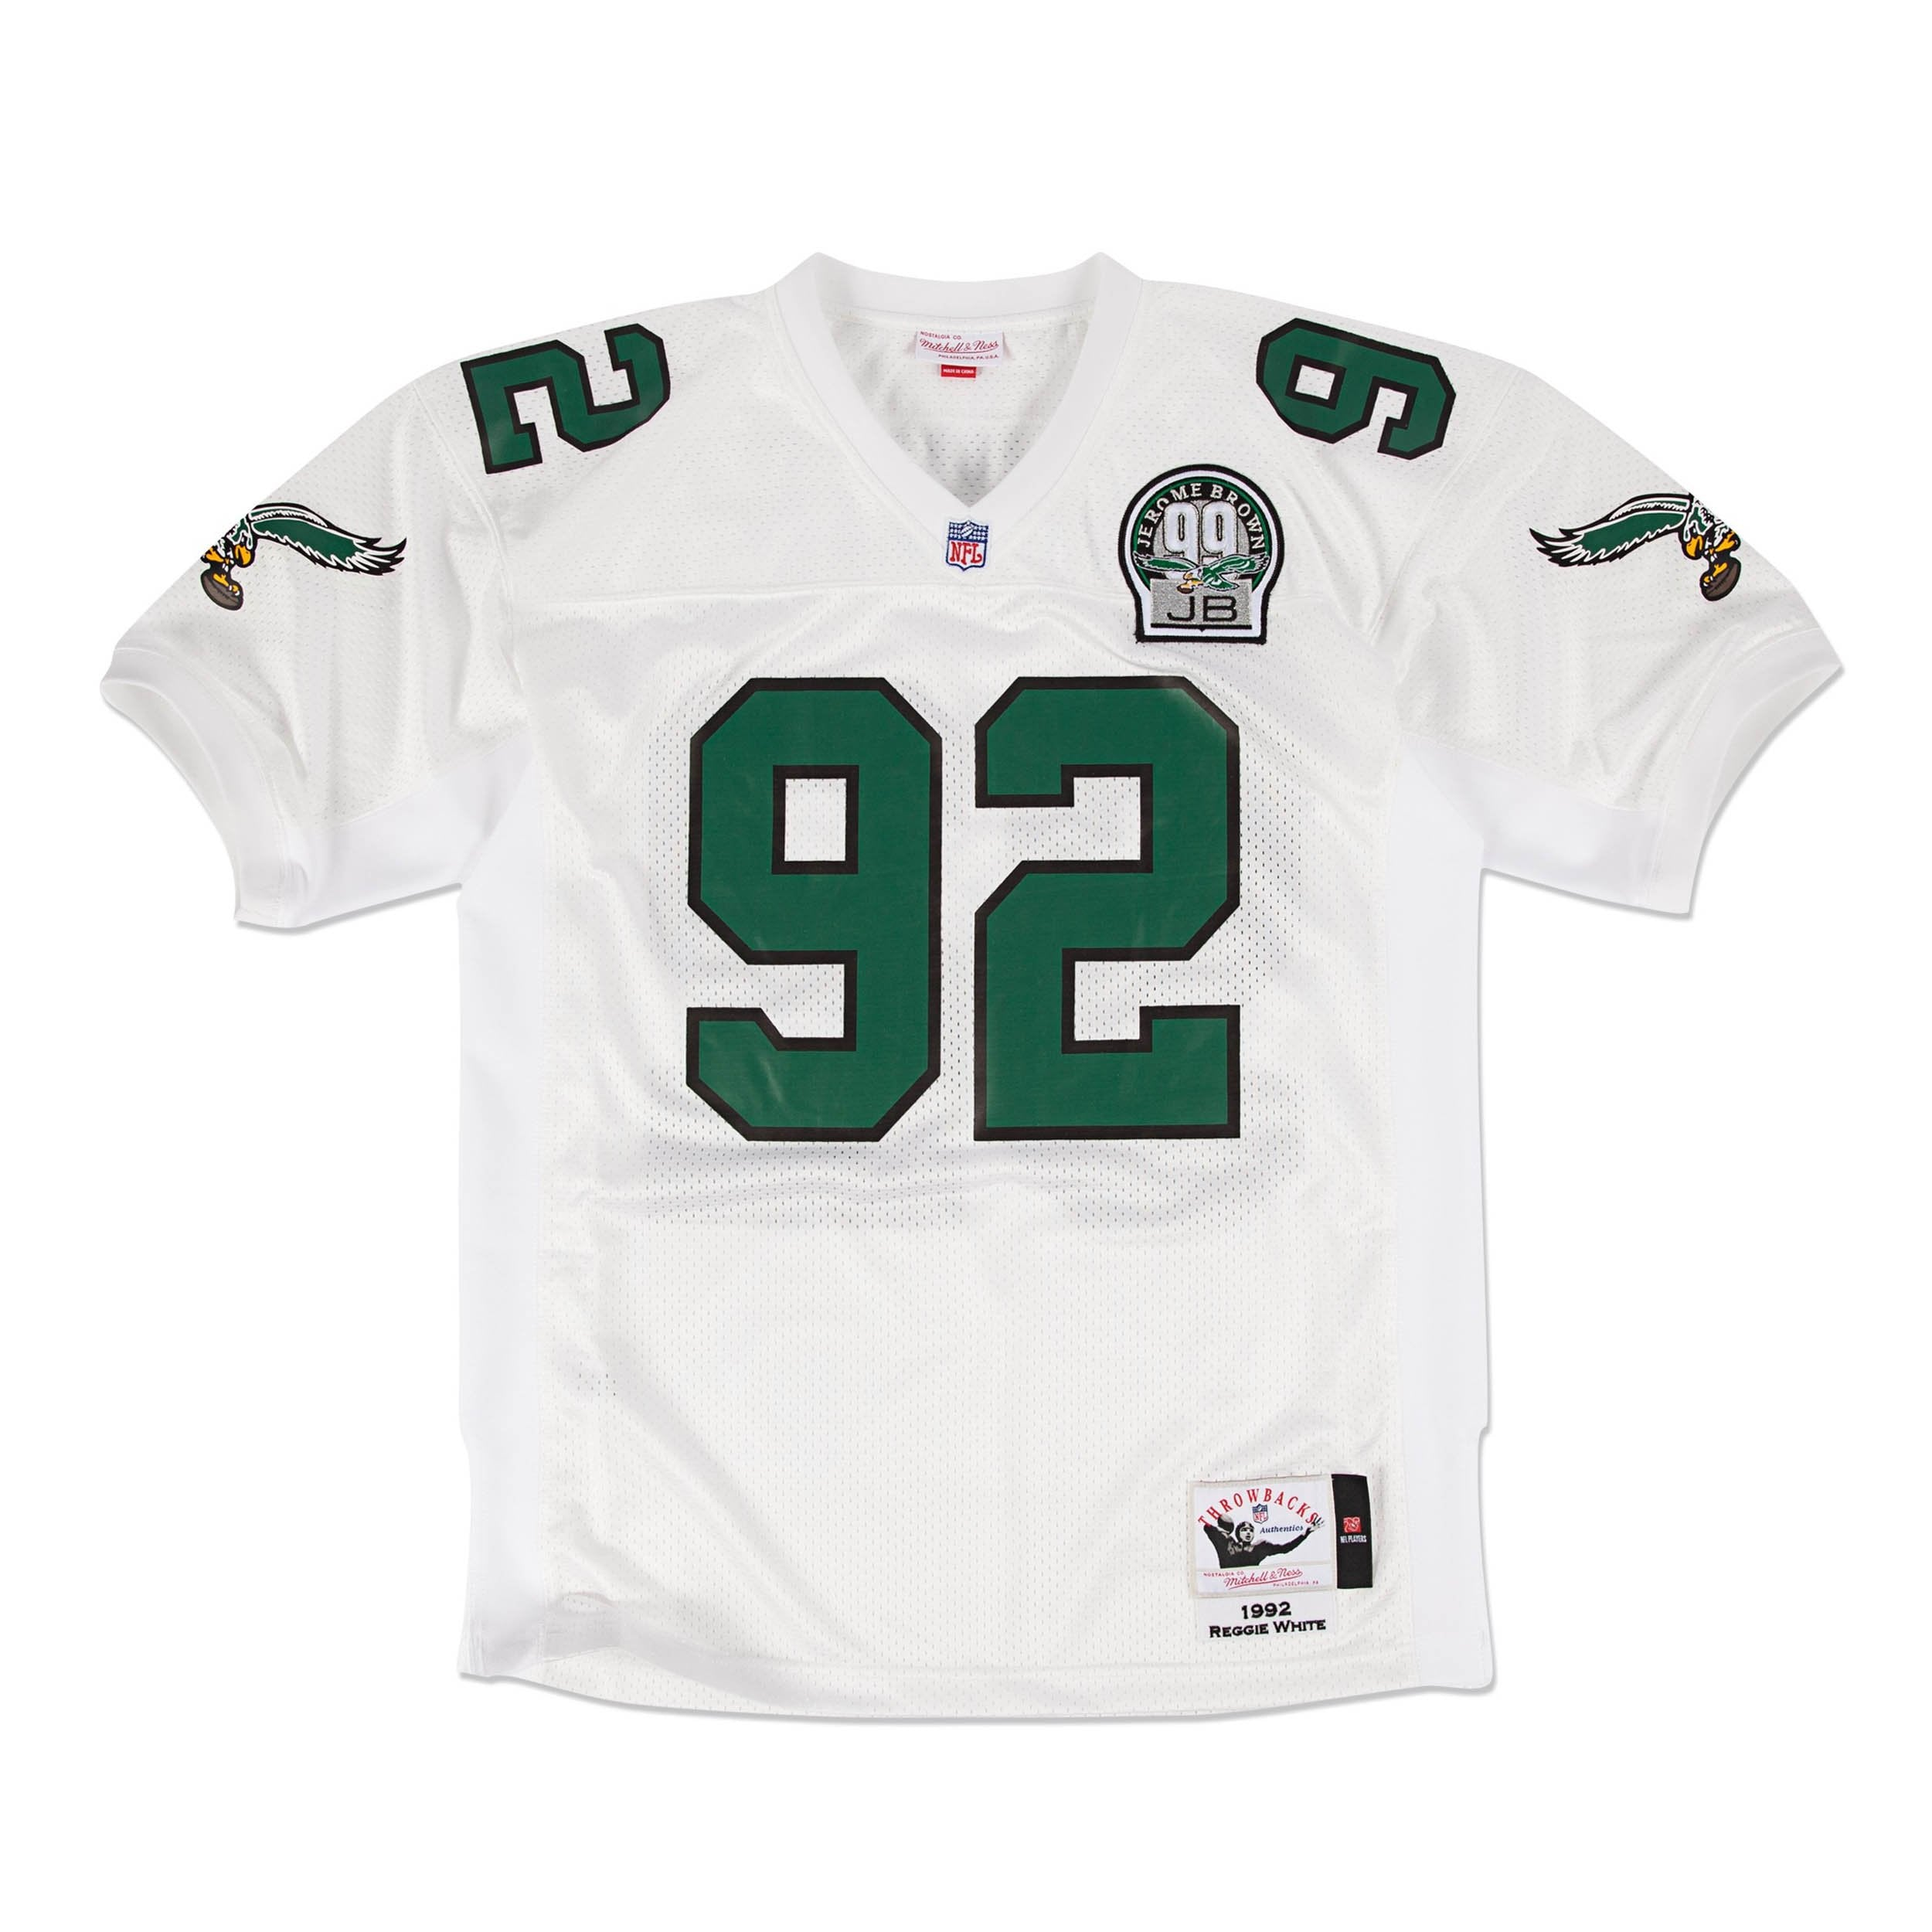 ... real mitchell ness reggie white 1992 authentic jersey philadelph  mitchell and ness philadelphia eagles ad3ab 4fd74 ac66e8f98